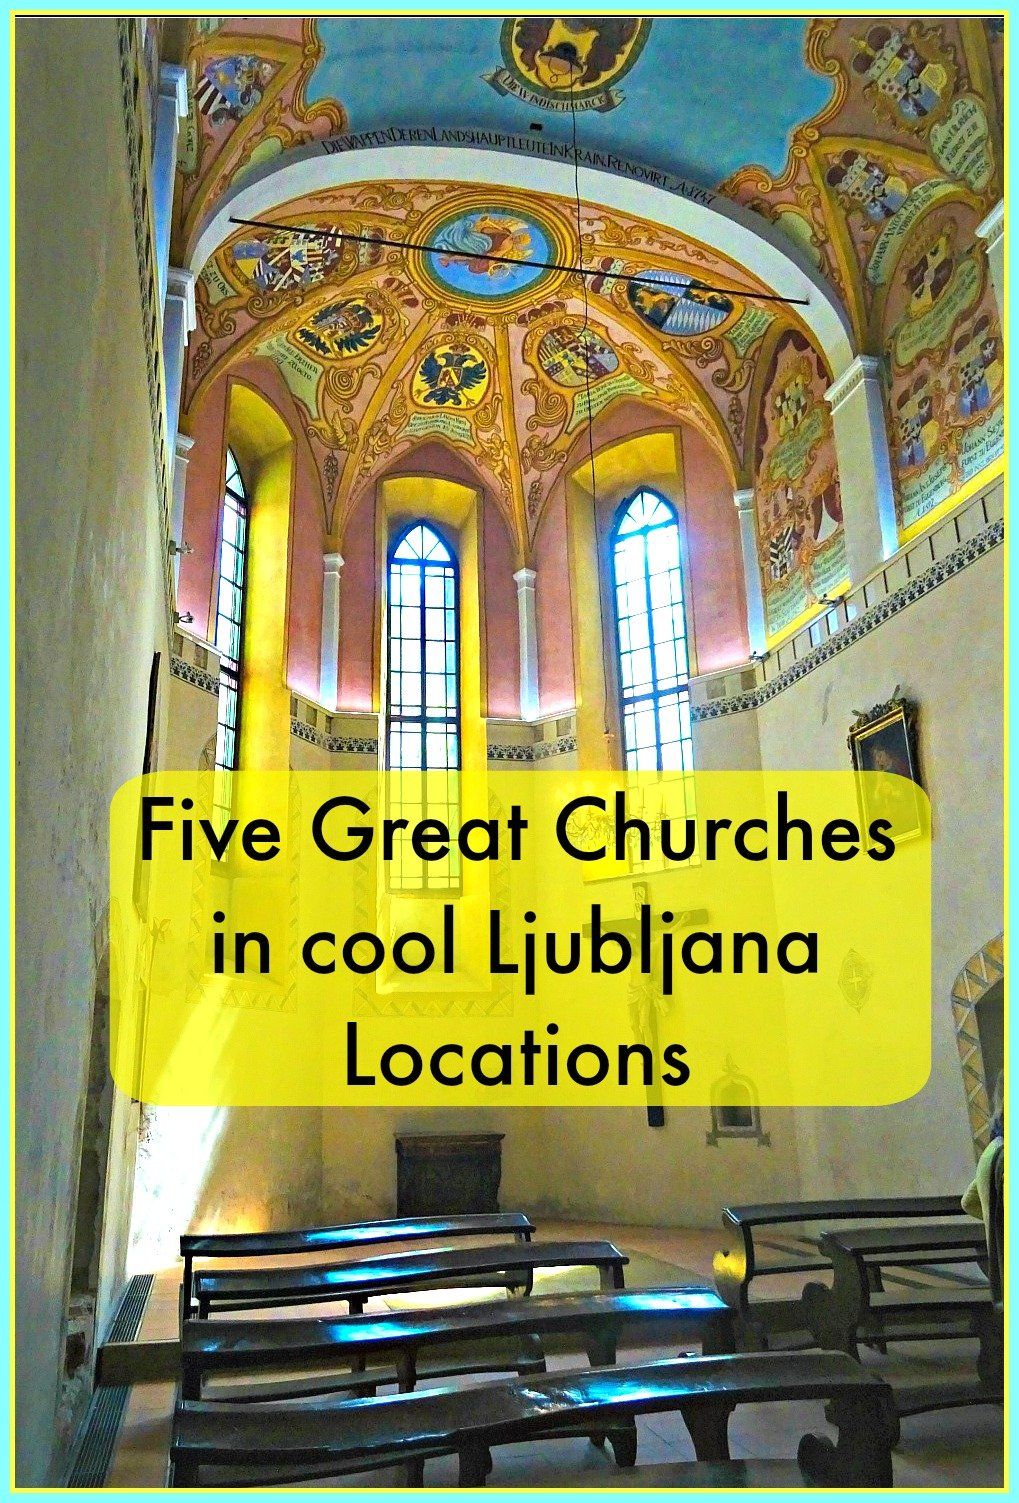 Five Great Churches in cool Ljubljana Locations